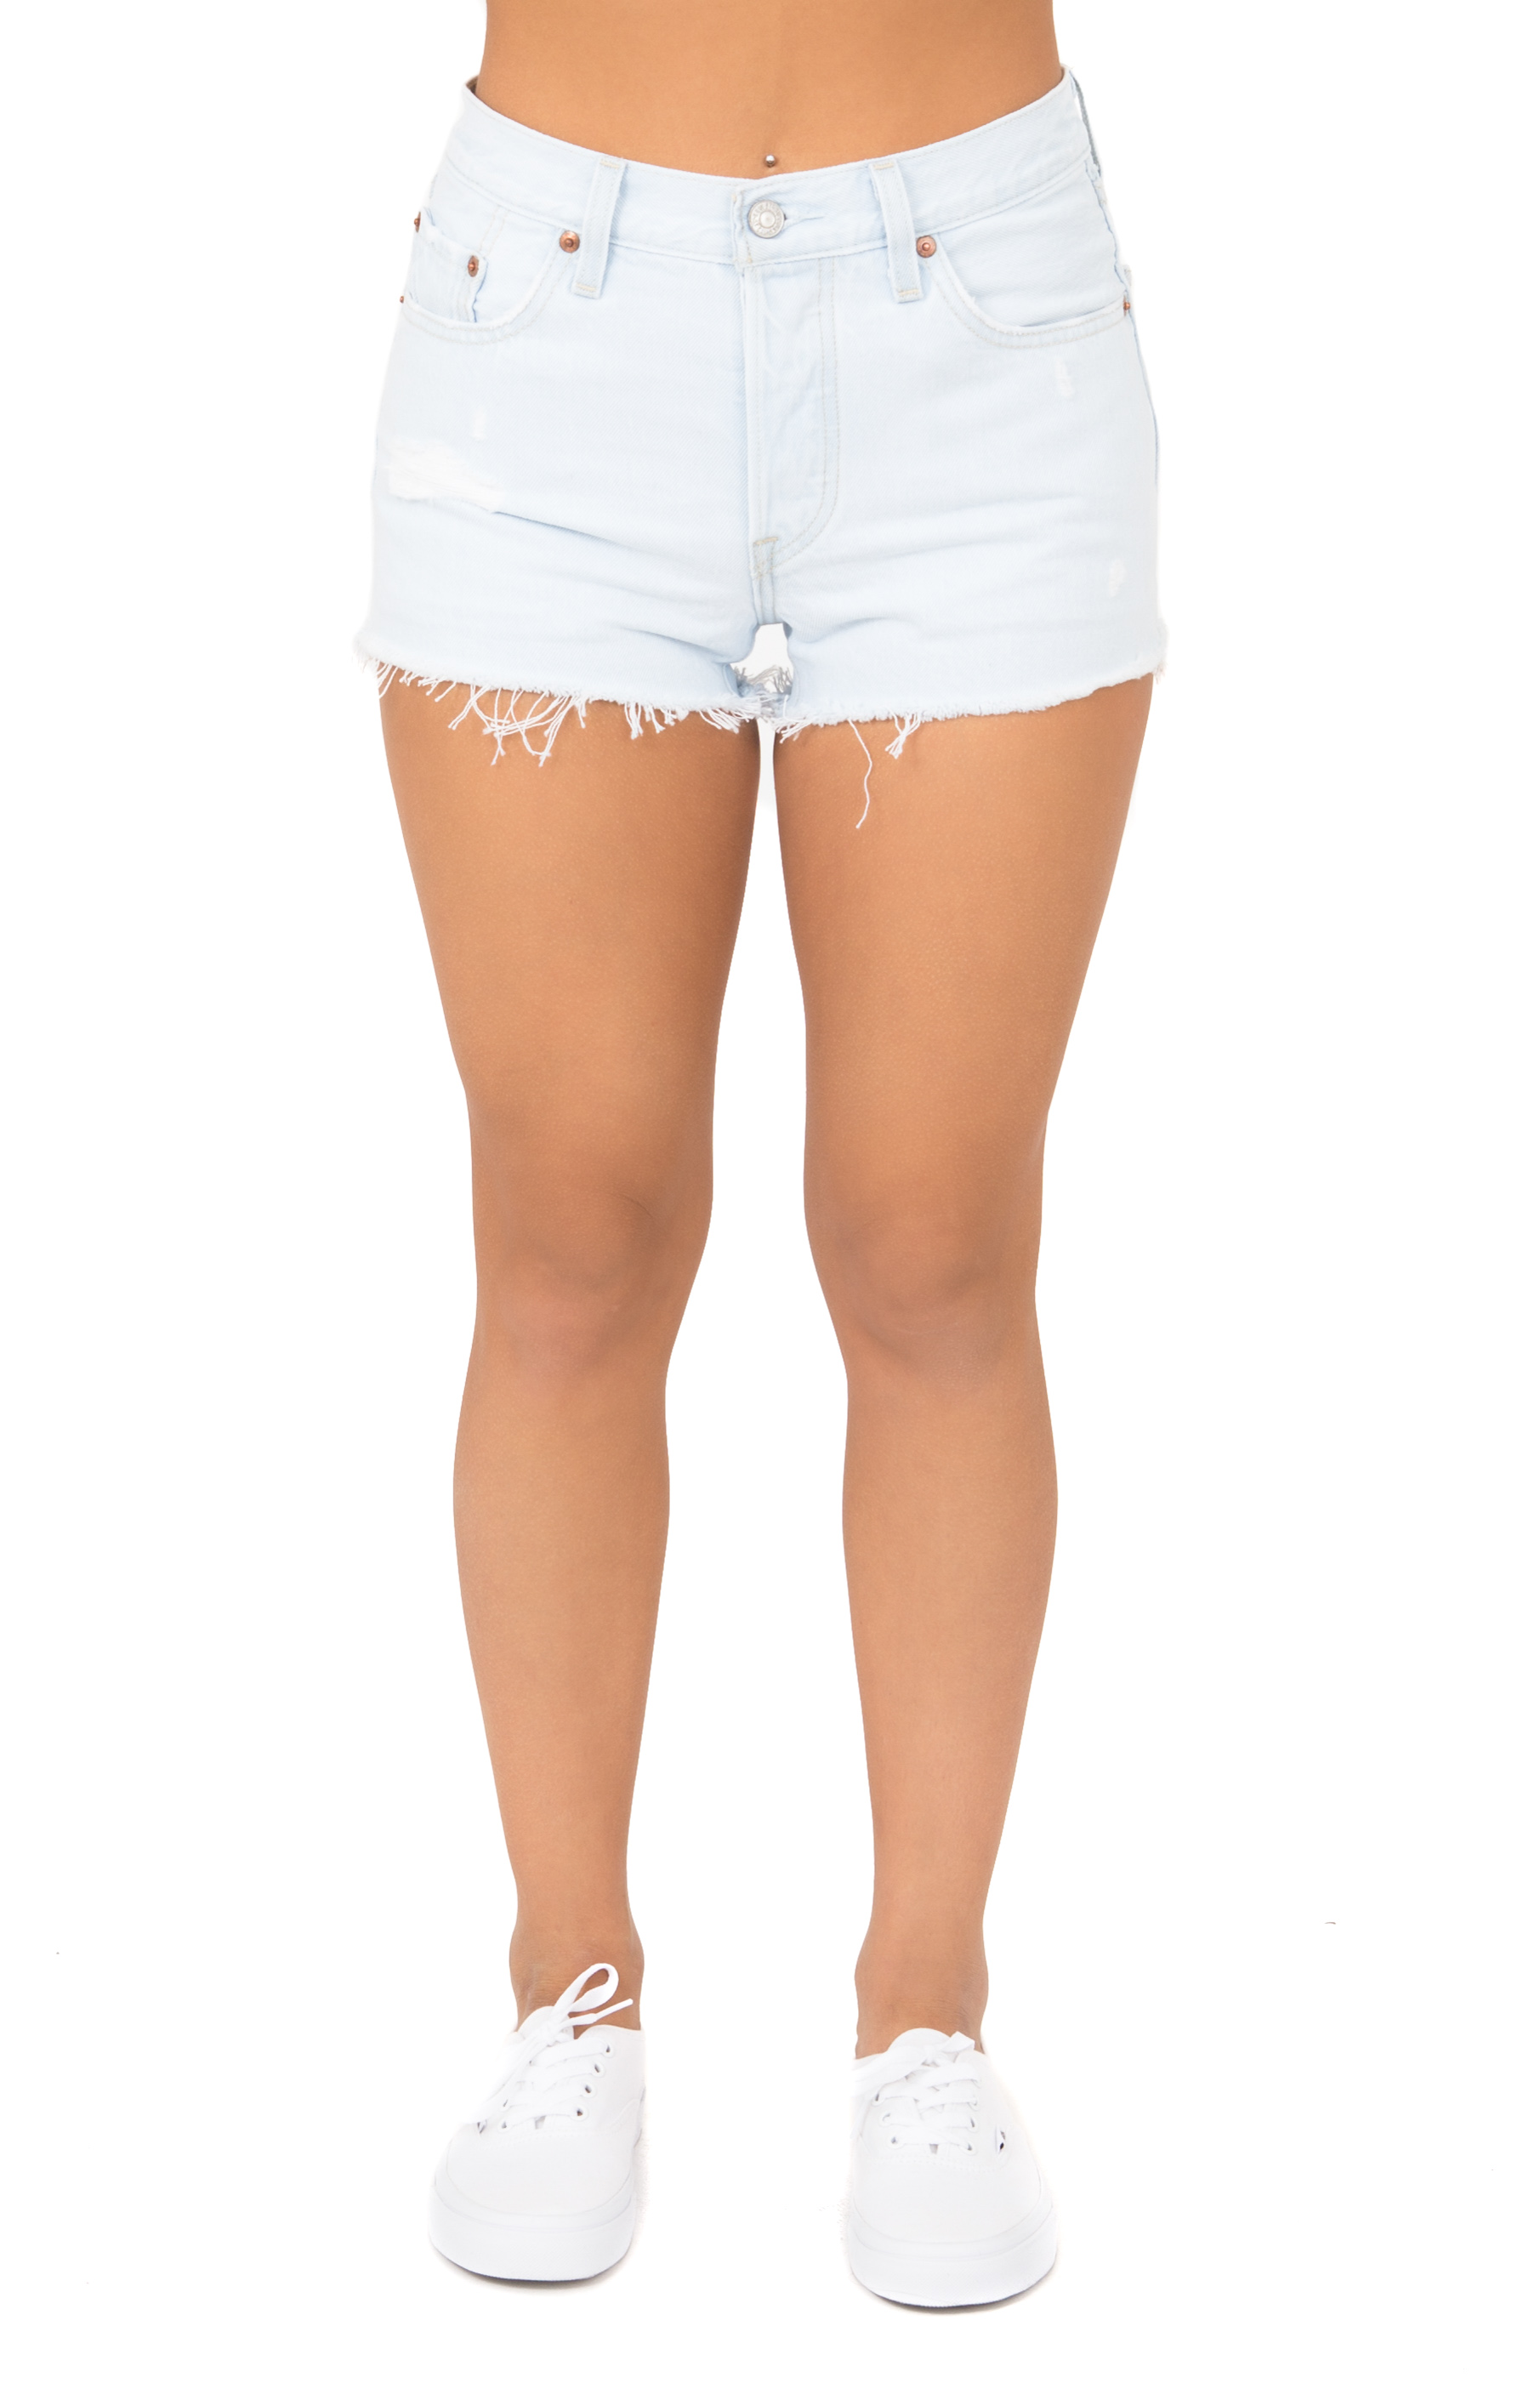 Leviswomens 501 Shorts - Love Thing